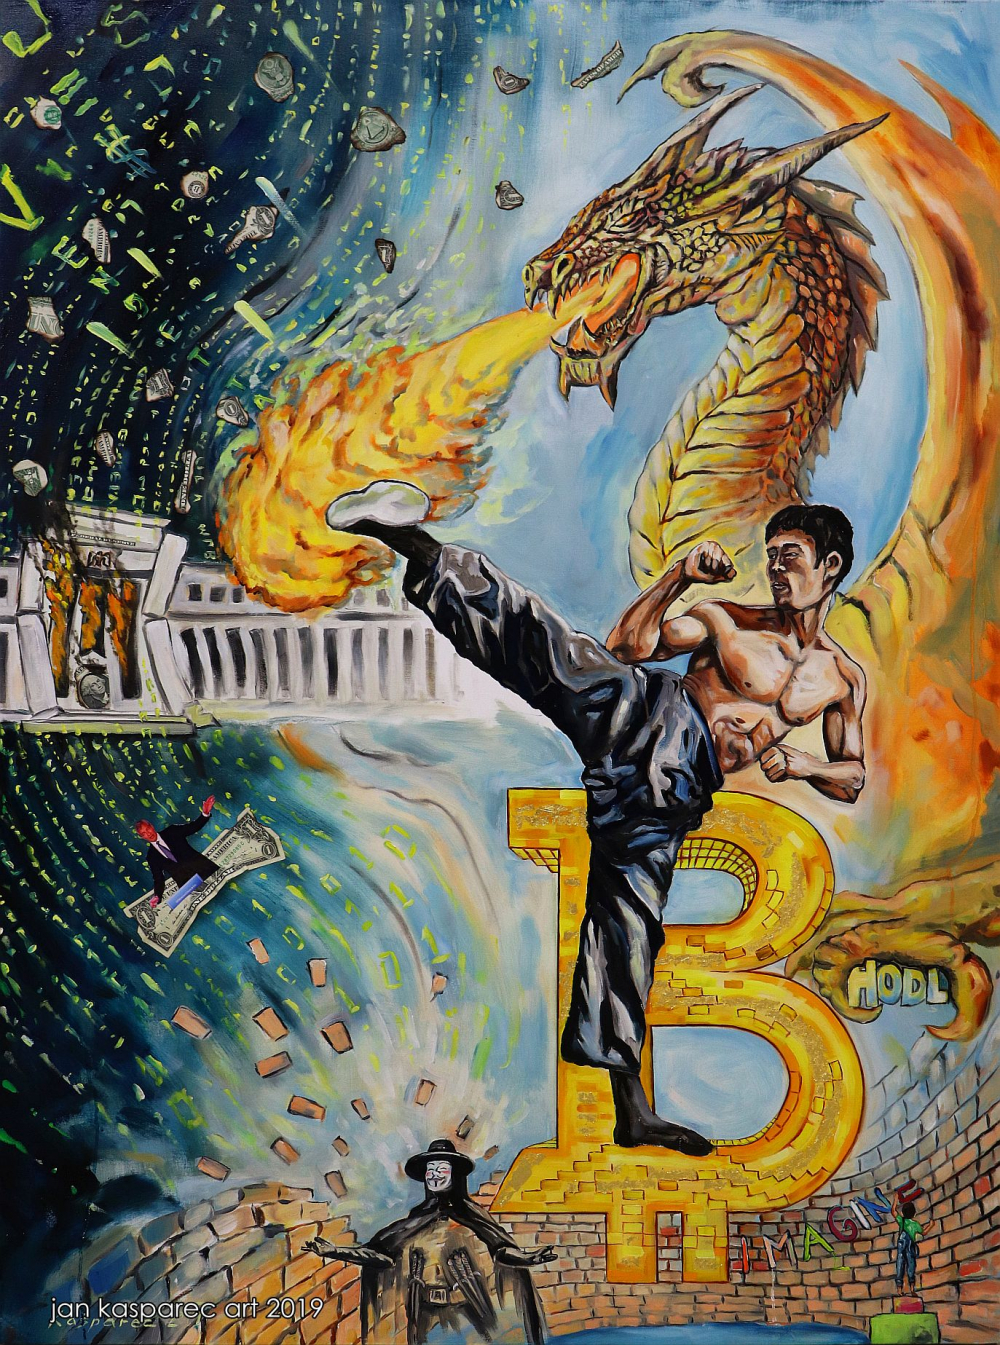 Oil painting - Bitcoin Bruce Lee (Oil ,24 karat gold and dollar bills on canvas)